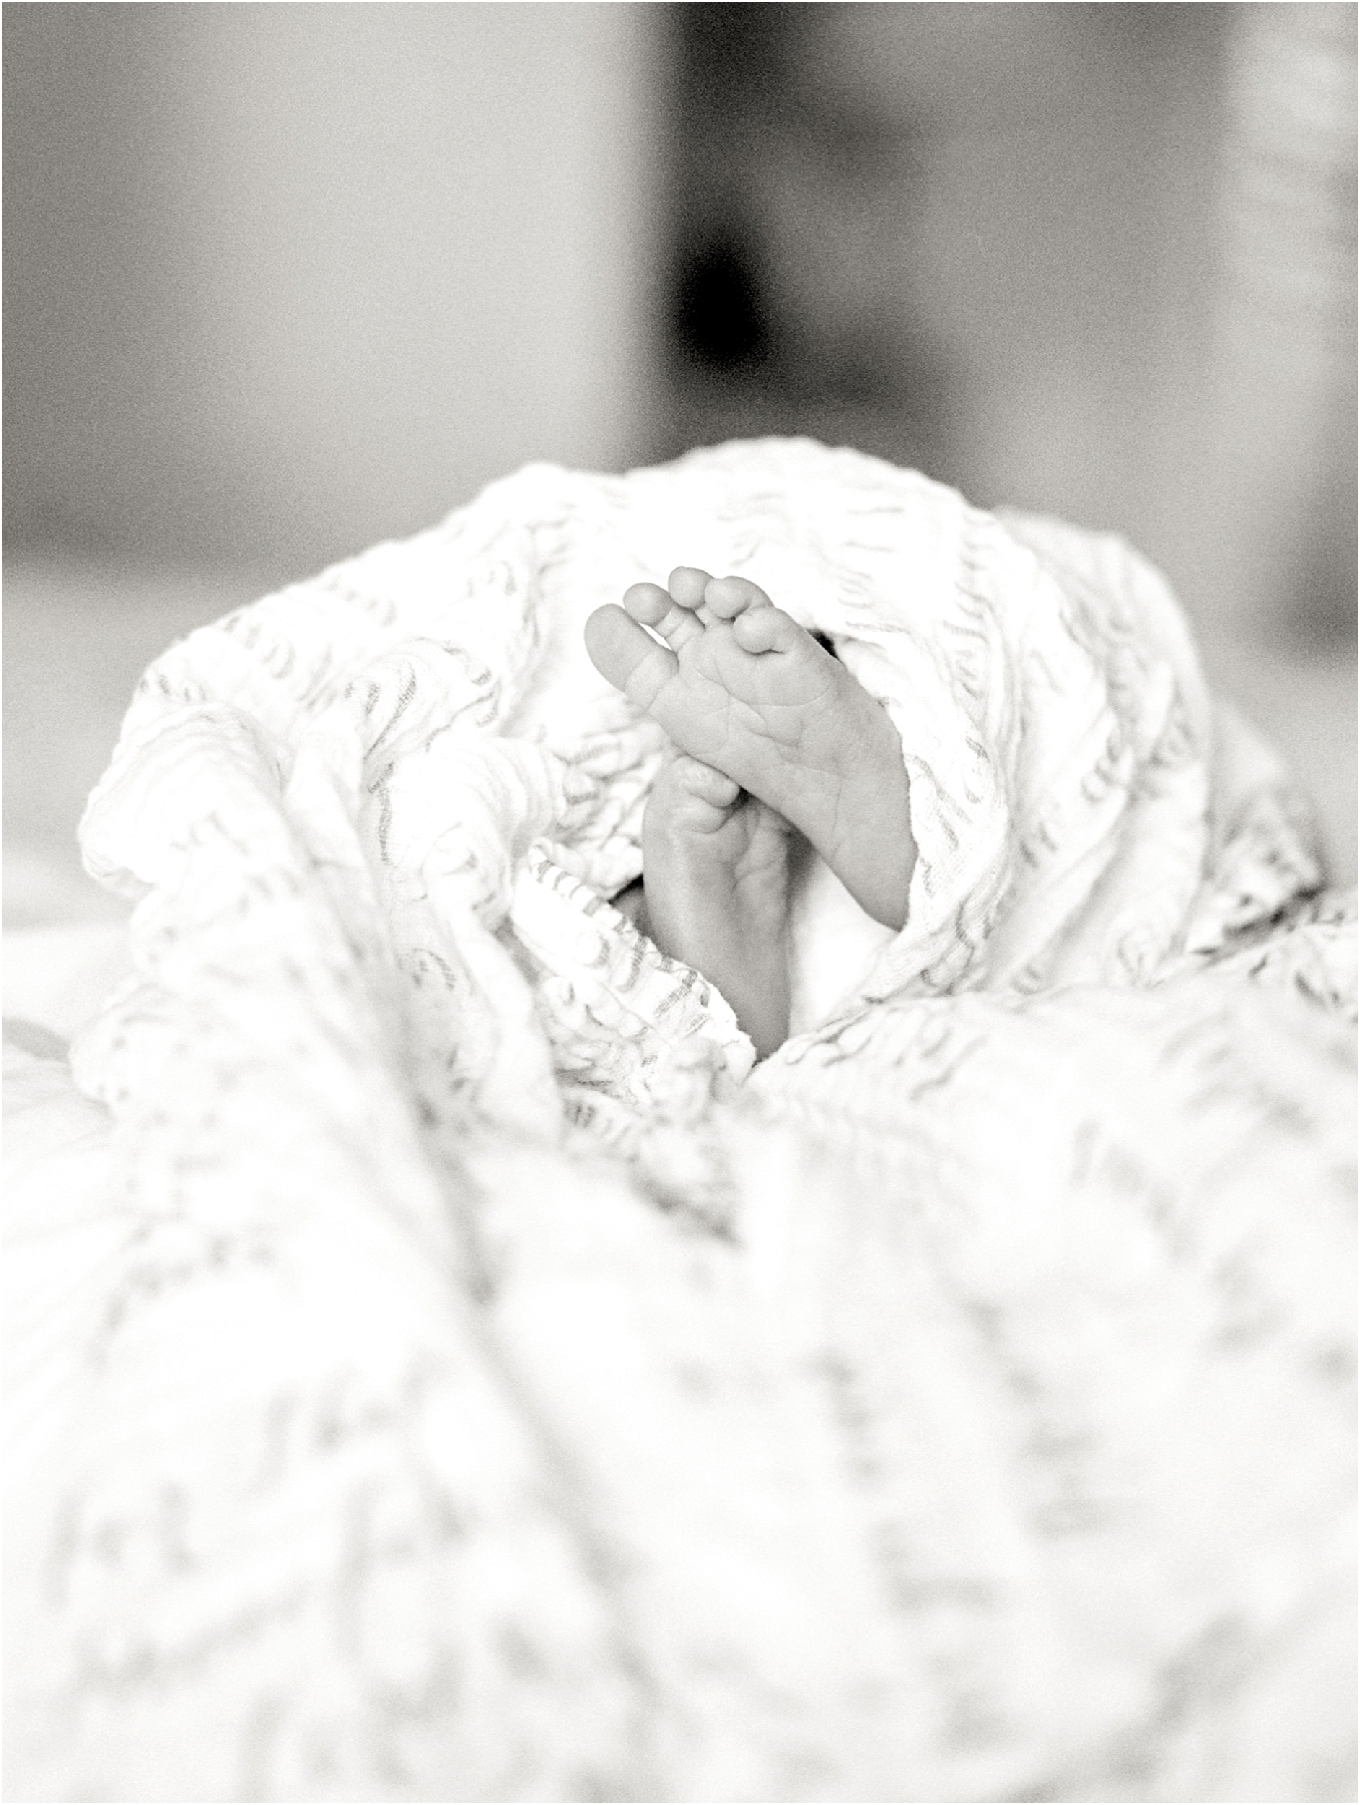 Lisa Silva Photography- Ponte Vedra Beach, St. Augustine and Jacksonville, Florida Fine Art Film Wedding and Boudoir Photography- Lifestyle Family Session At Home With Newborn Baby_0009.jpg